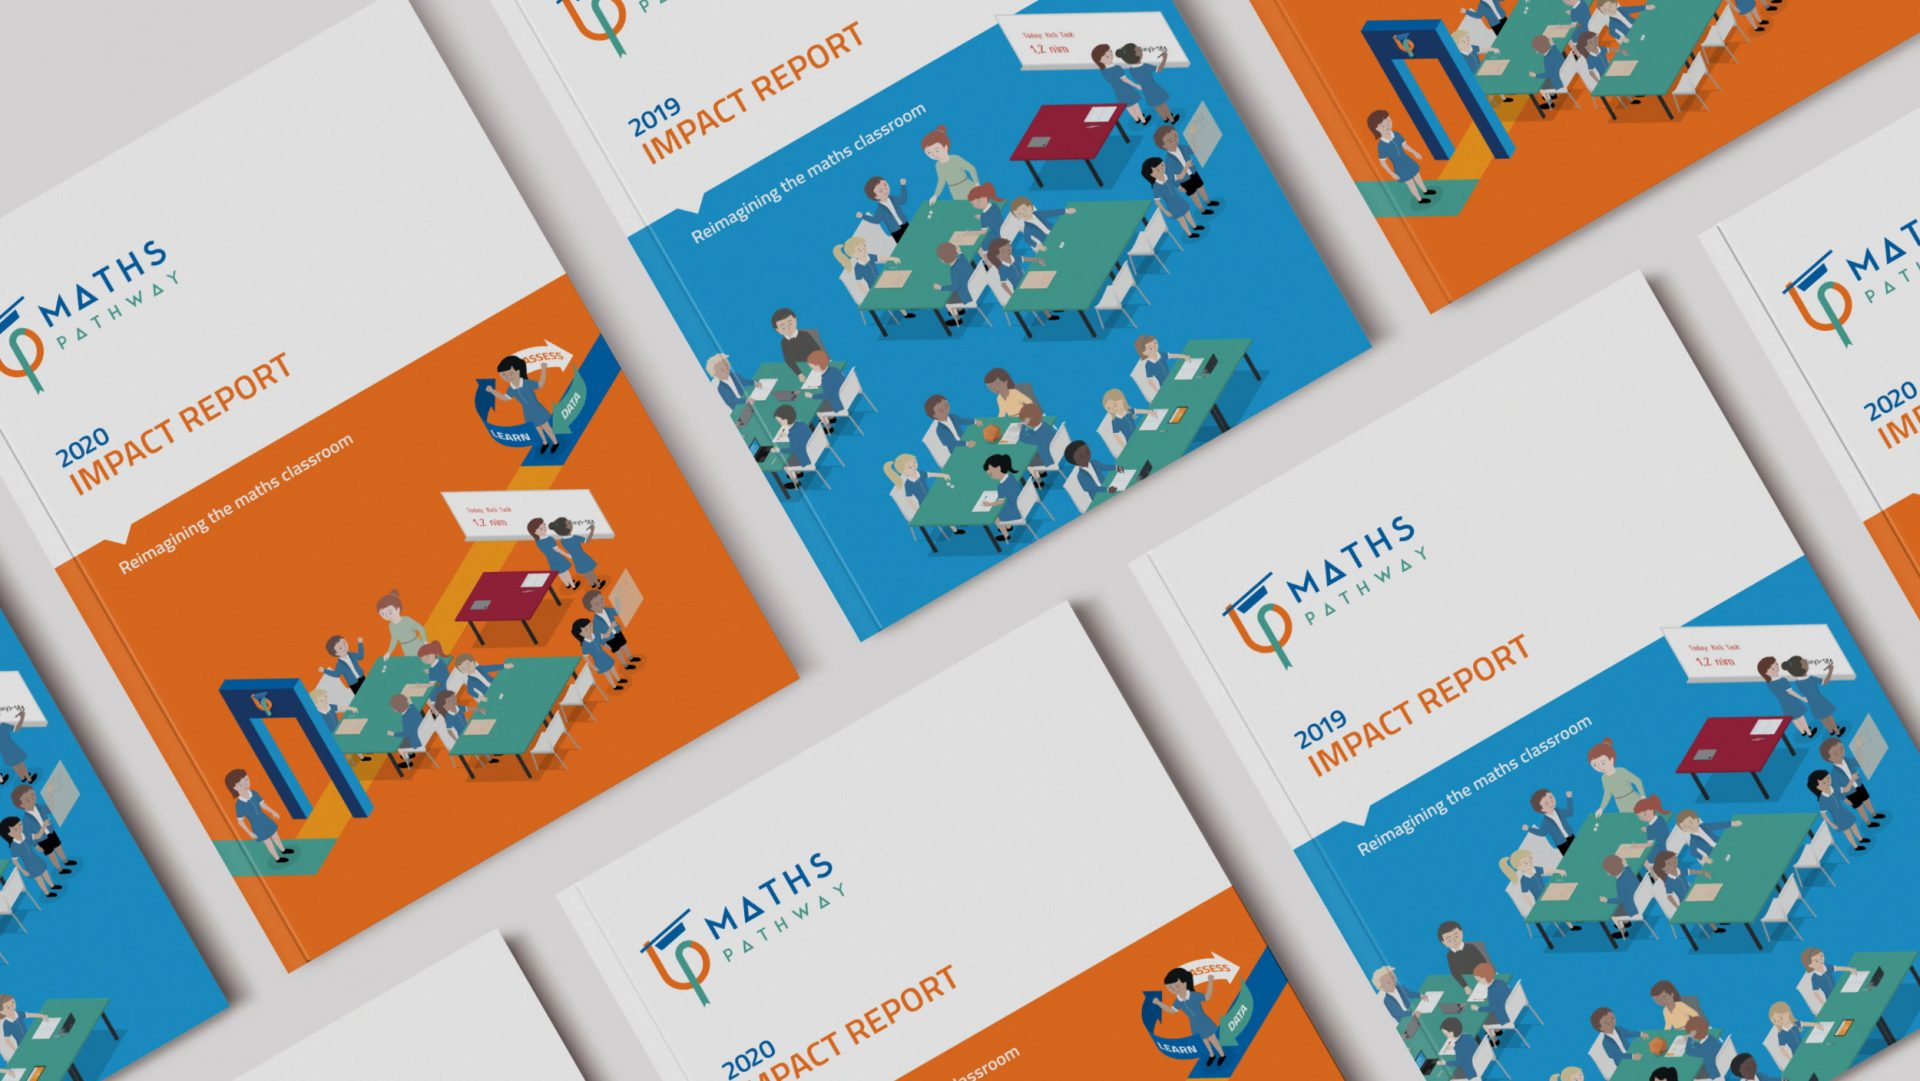 2019 and 2020 Impact Report covers for Maths Pathway